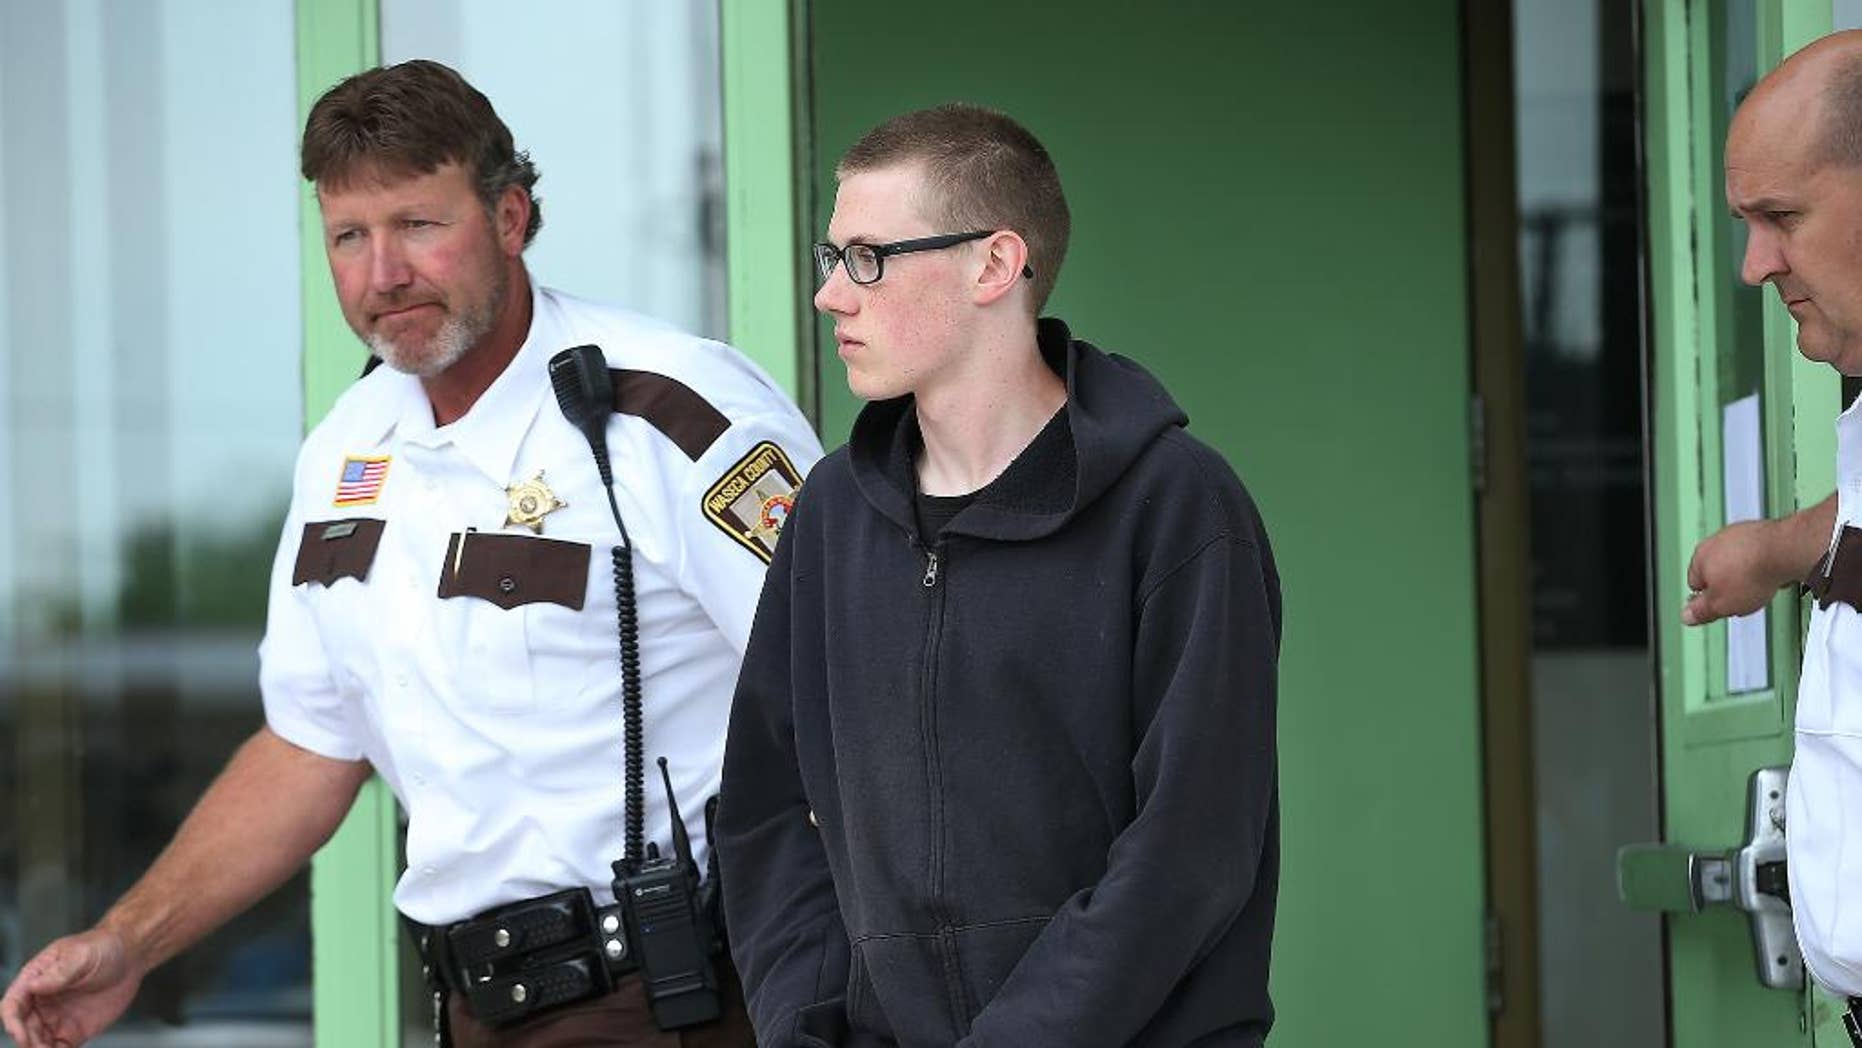 In this photo taken June 30, 2014, John LaDue, accused of planning an attack on his school, is escorted by Waseca County Sheriff's  Deputies for a hearing in Waseca, Minn. District Judge Robert Birnbaum on Friday, Aug. 21, 2015, has certified the Waseca teenager, accused of planning to kill his family and attack his high school, to stand trial as an adult. (Elizabeth Flores/Star Tribune via AP)  MANDATORY CREDIT; ST. PAUL PIONEER PRESS OUT; MAGS OUT; TWIN CITIES LOCAL TELEVISION OUT